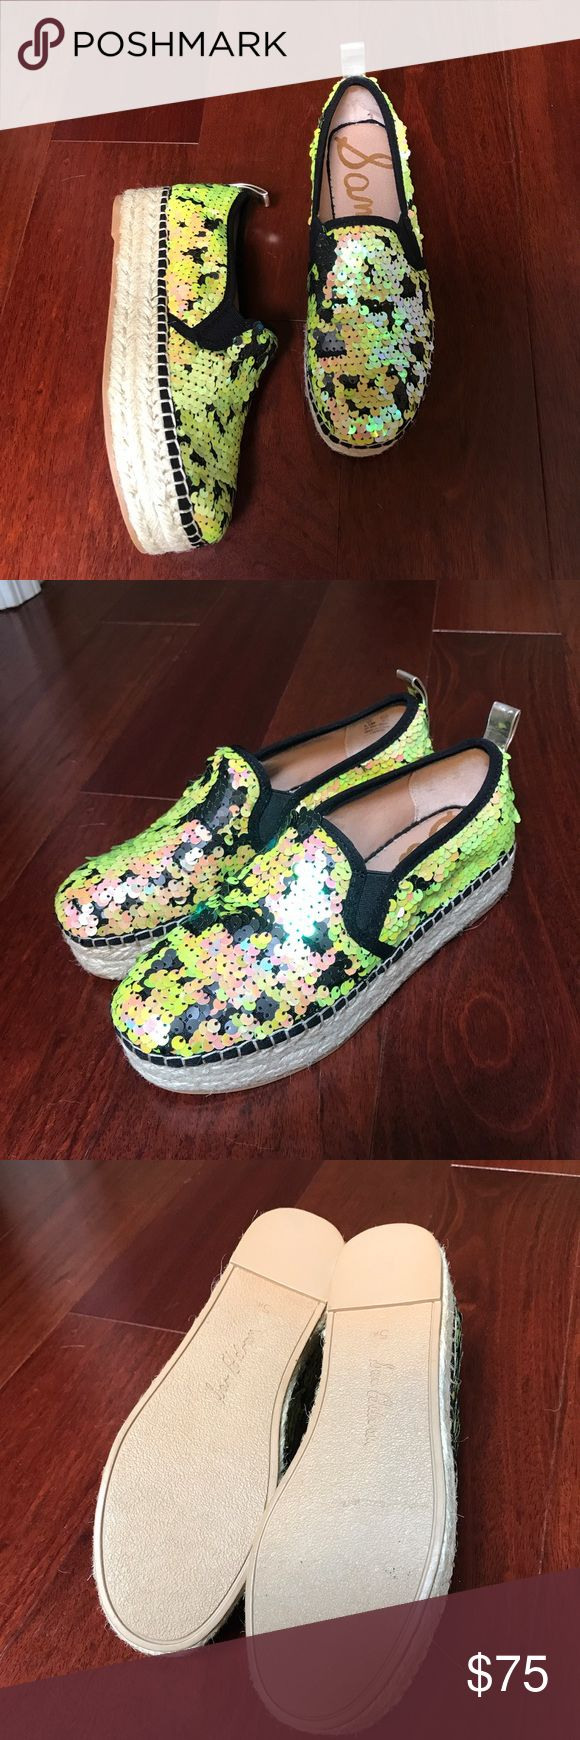 Sam Edelman Sequin Espadrilles Amazing shoes! Green, black, and iridescent color! These are definitely unique! Like new condition! Sam Edelman Shoes Espadrilles